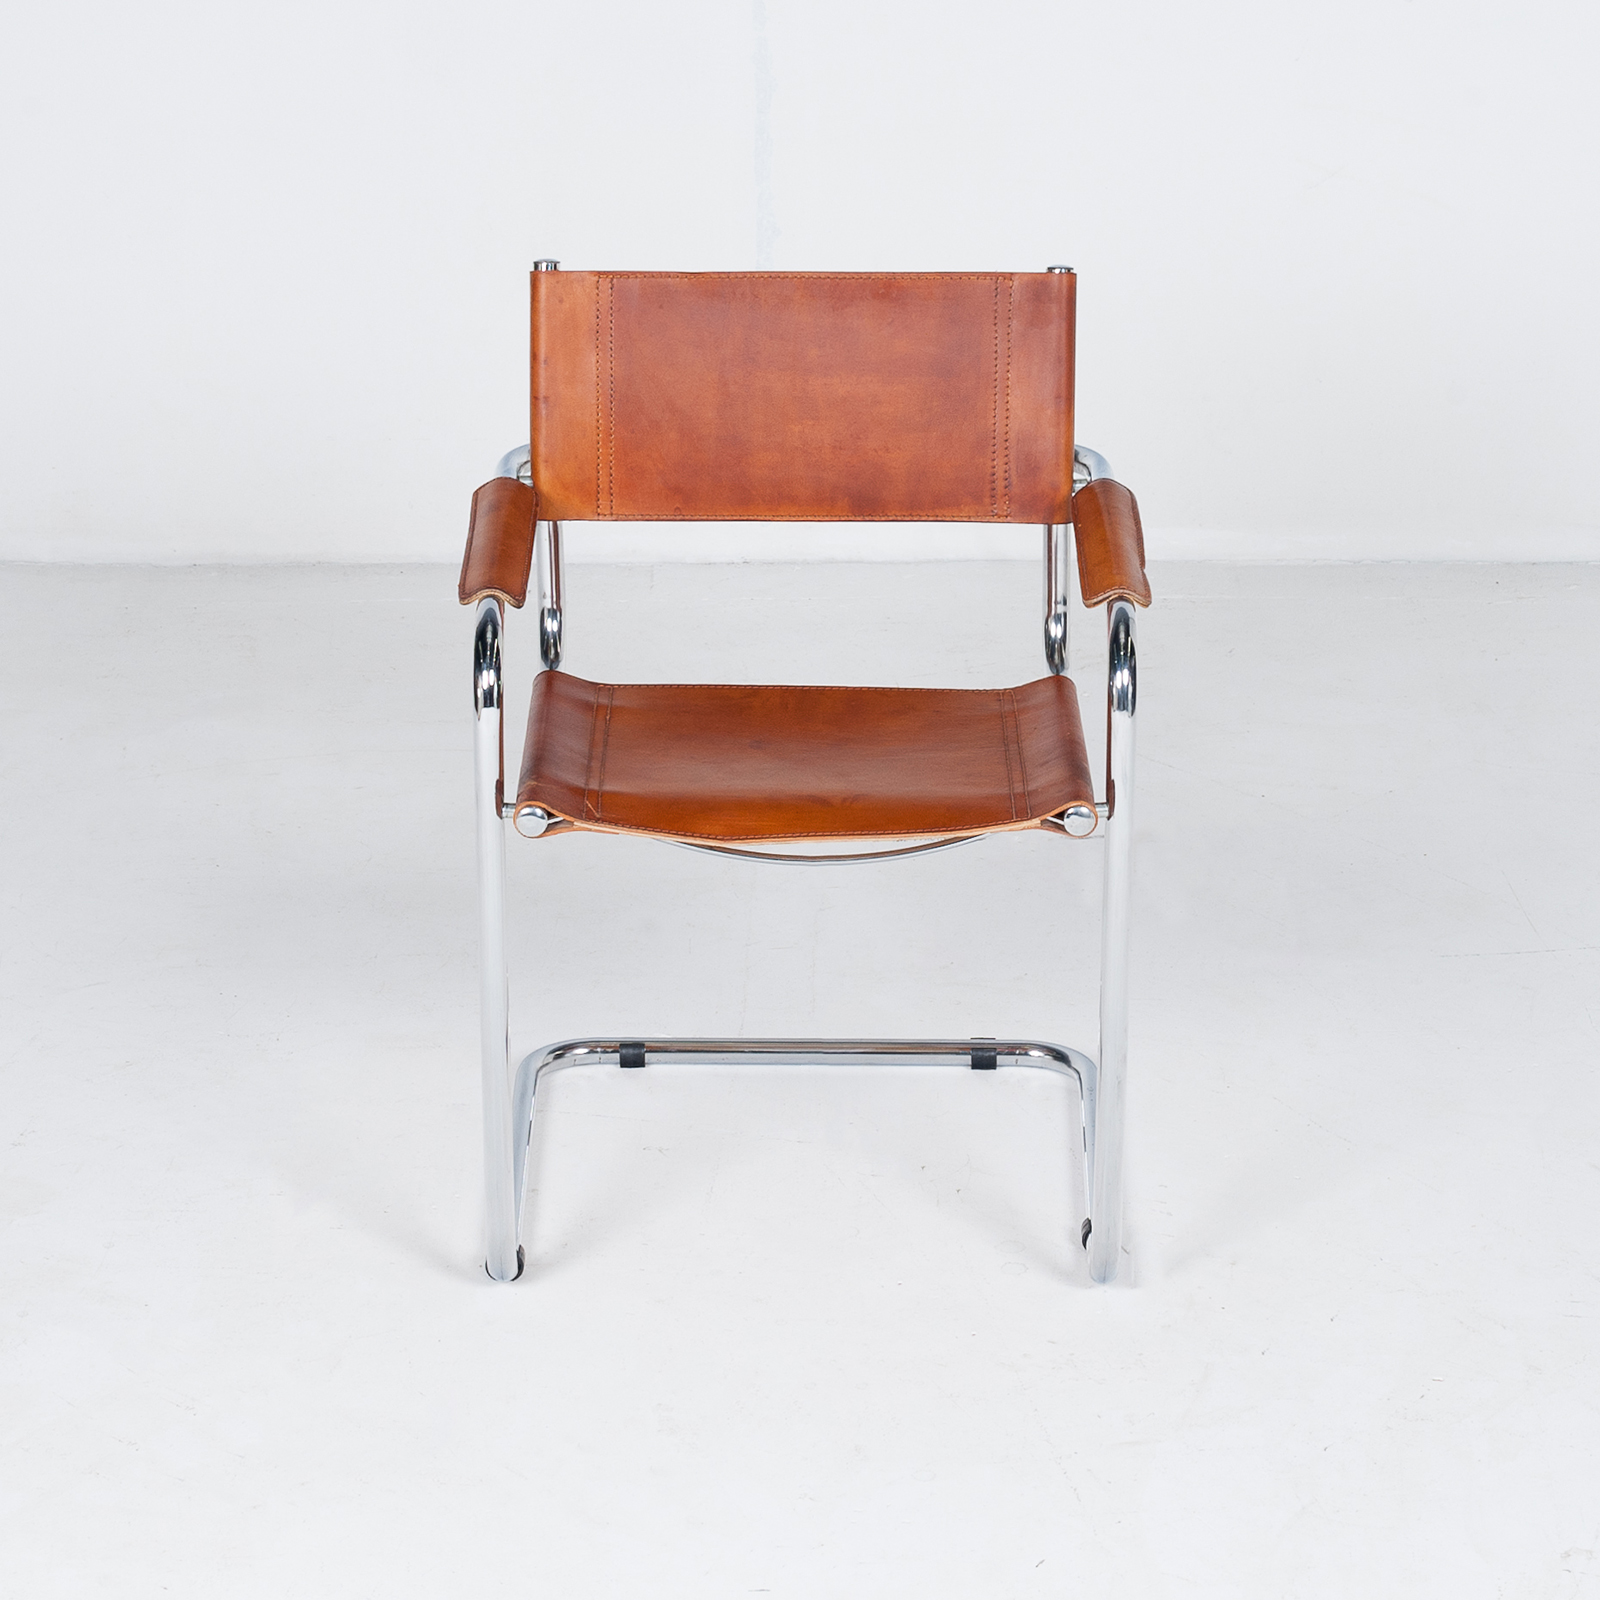 Set Of 4 Model S34 Cantilever Chairs In Tan Leather By Mart Stam For Thonet, 1980s, Germany18